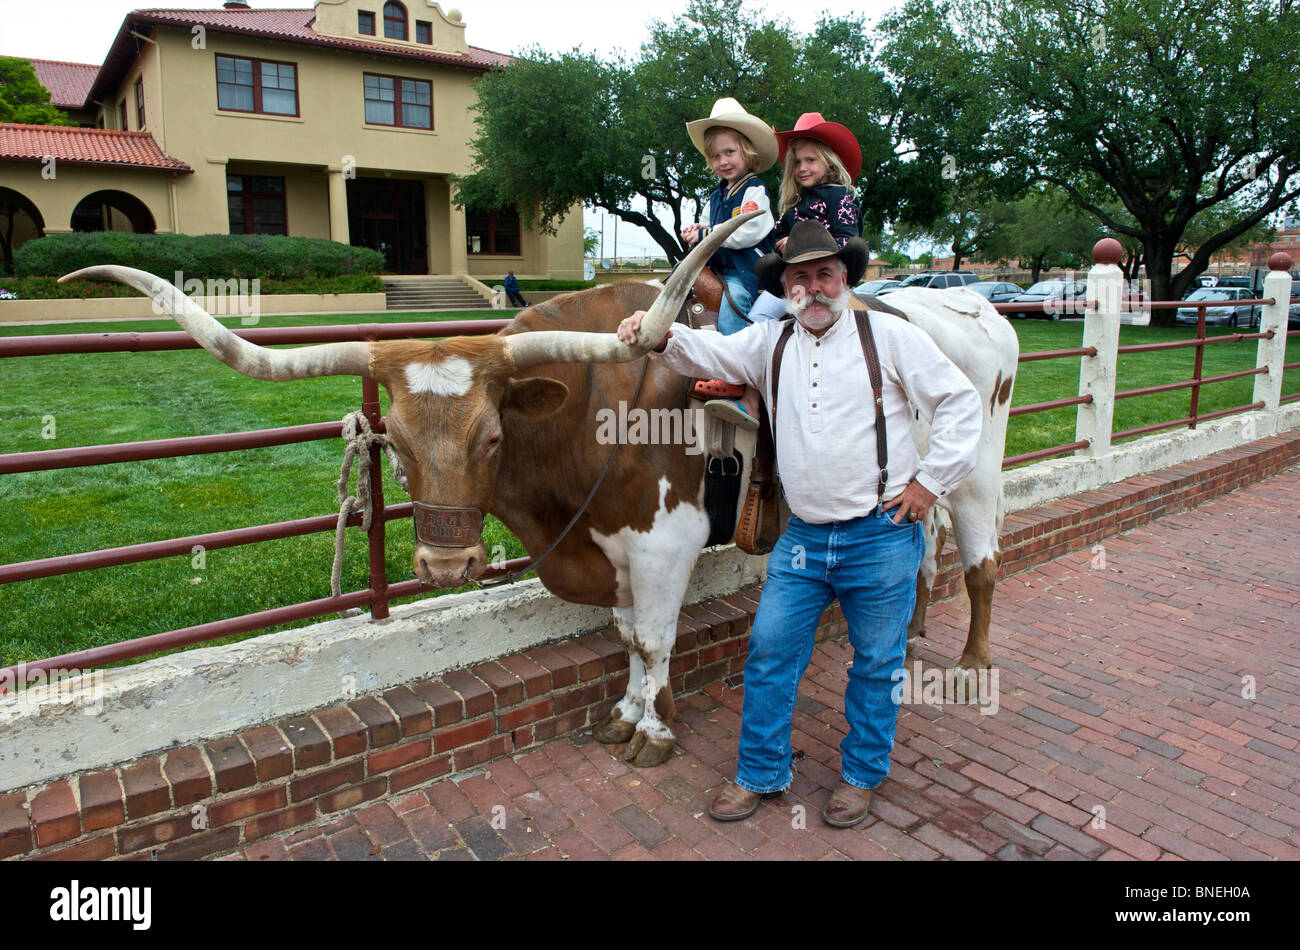 Children  on longhorns posing with grandfather in Fort Worth, Texas, USA Stock Photo